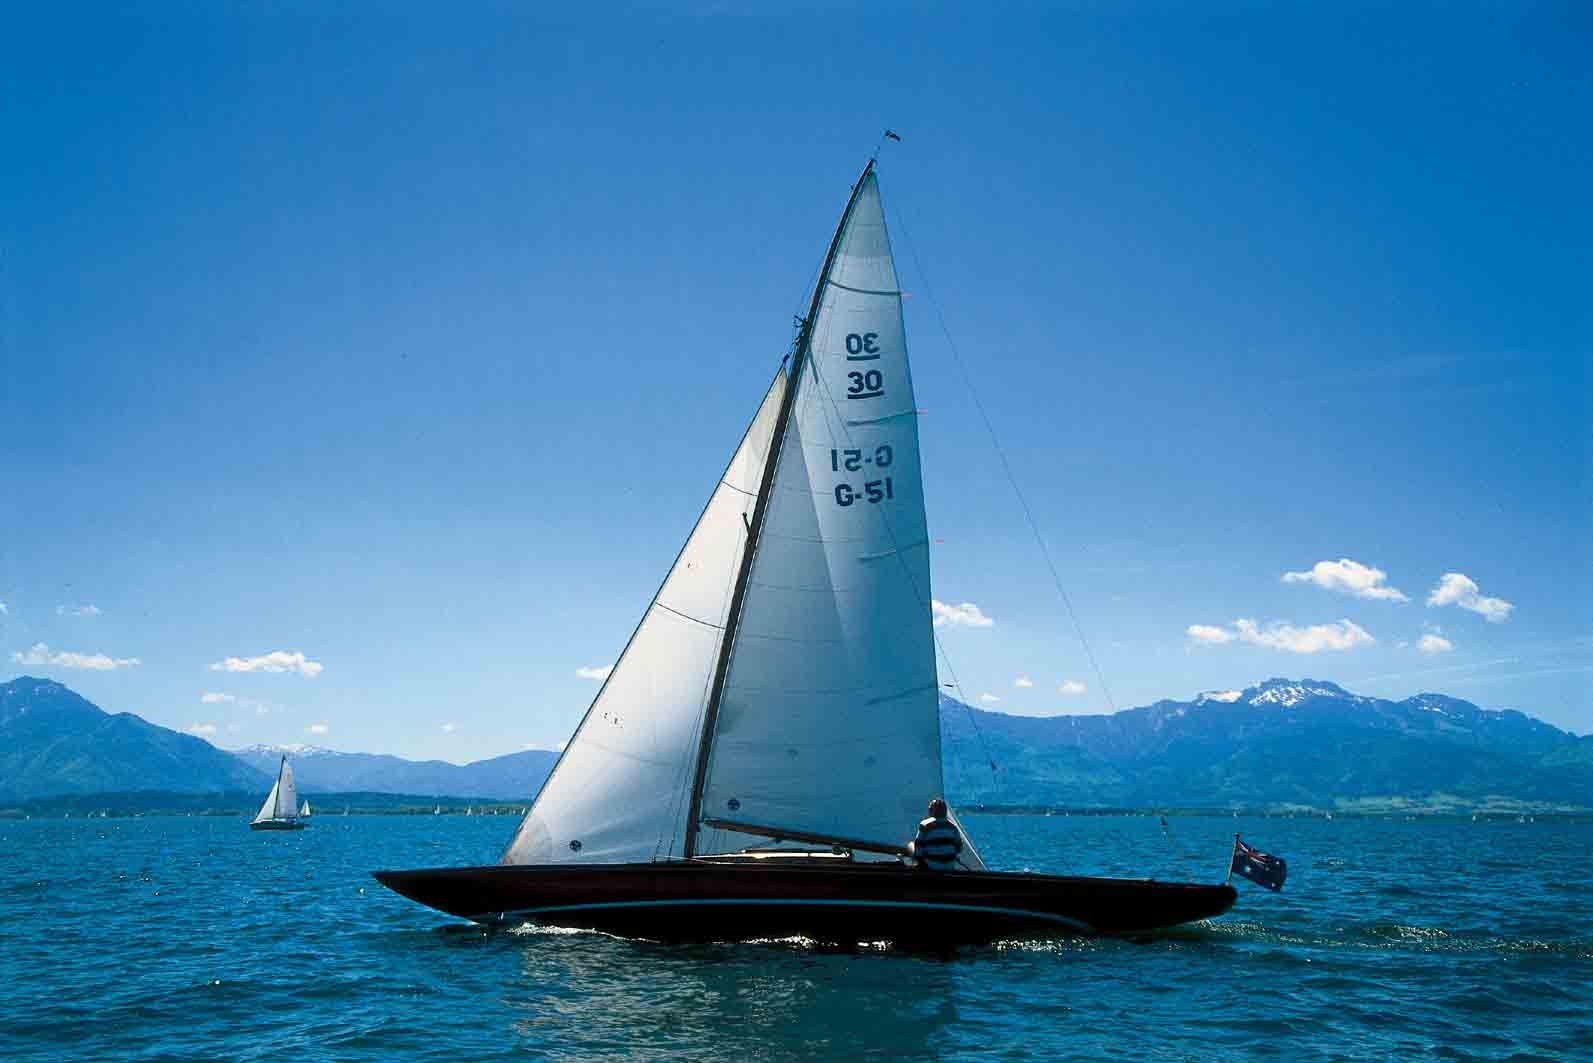 hungry for sailboat wallpaper - photo #1